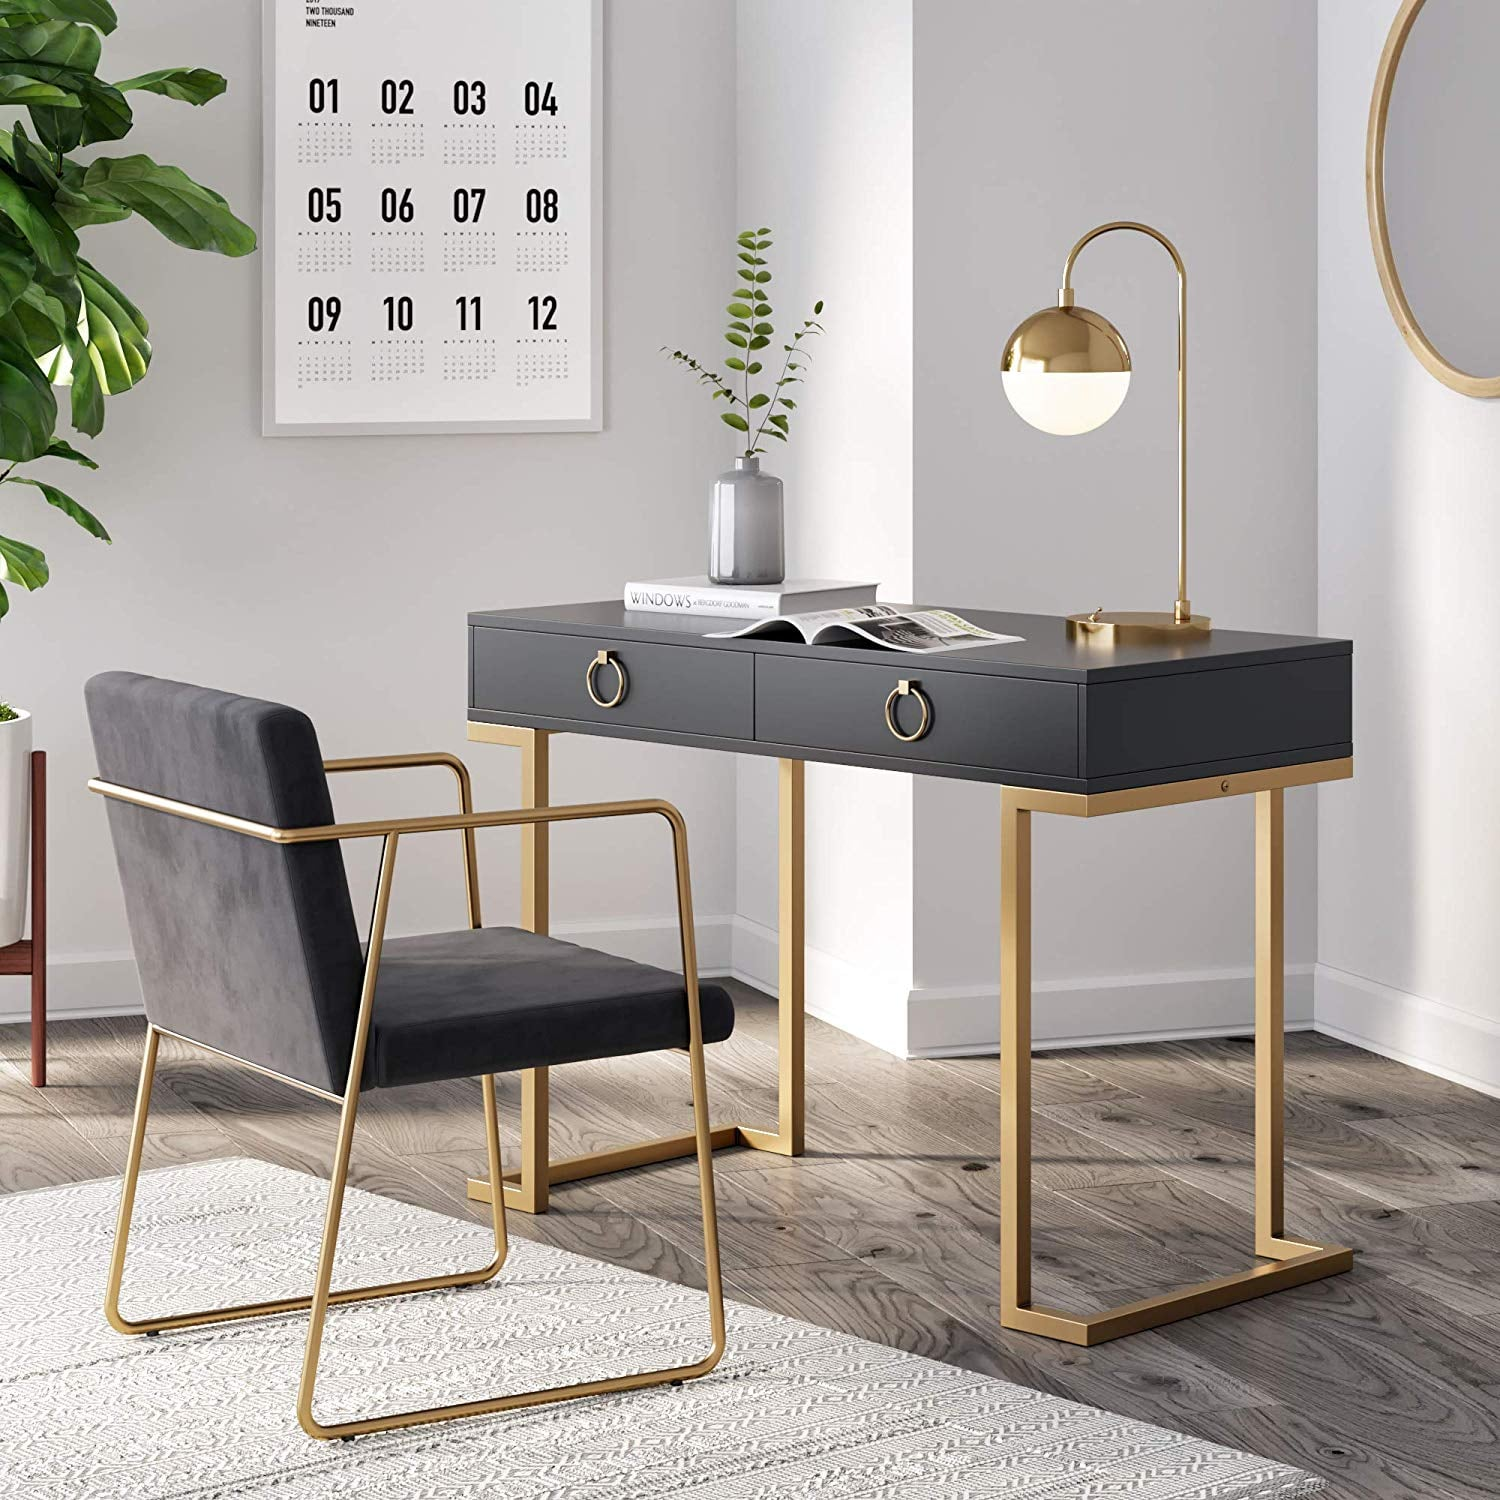 Stylish And Affordable Space Saving Desks From Amazon Popsugar Home